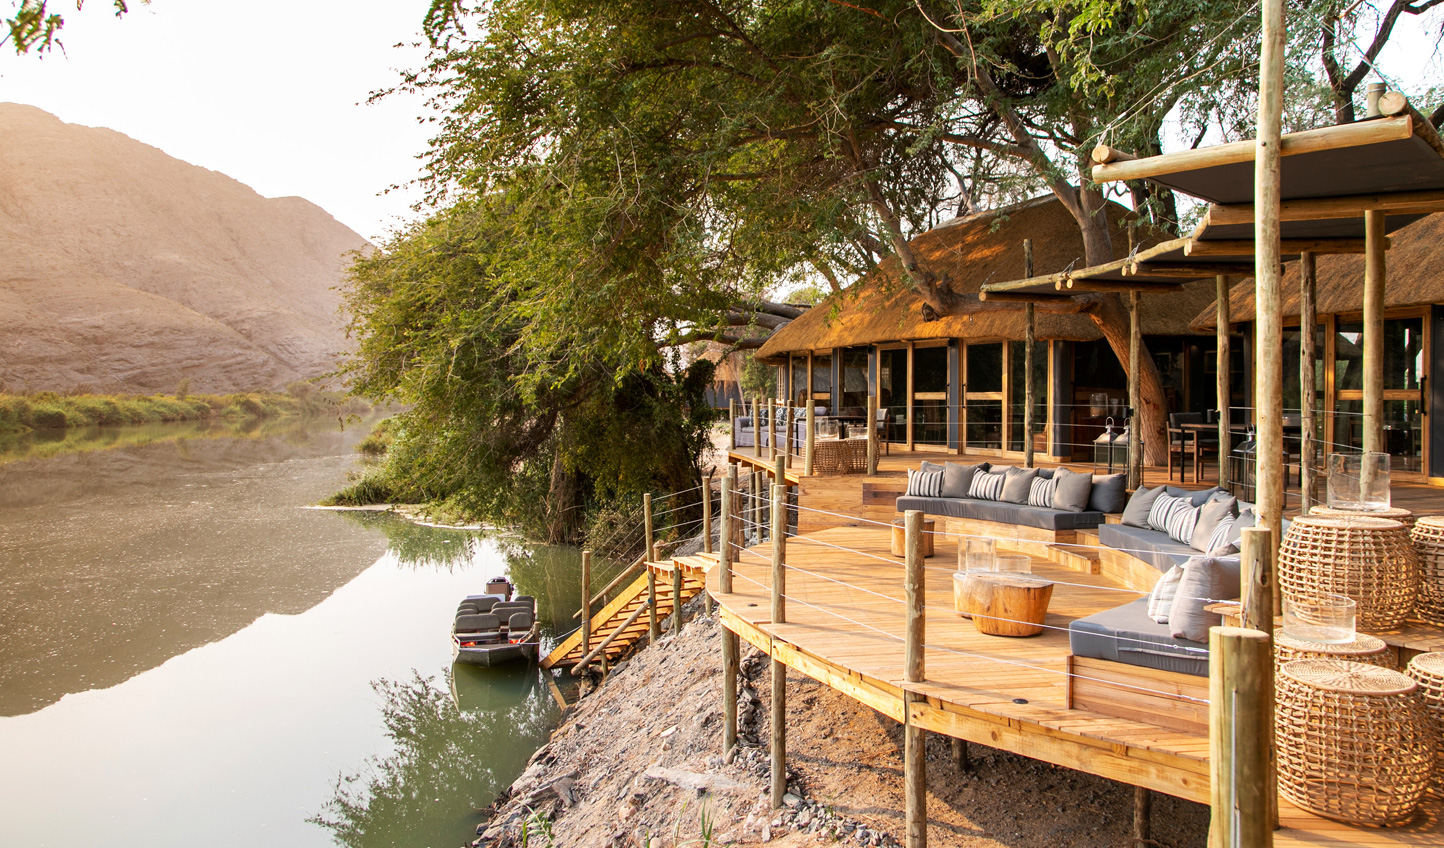 Rest up on the banks of the Kunene River at Serra Cafema